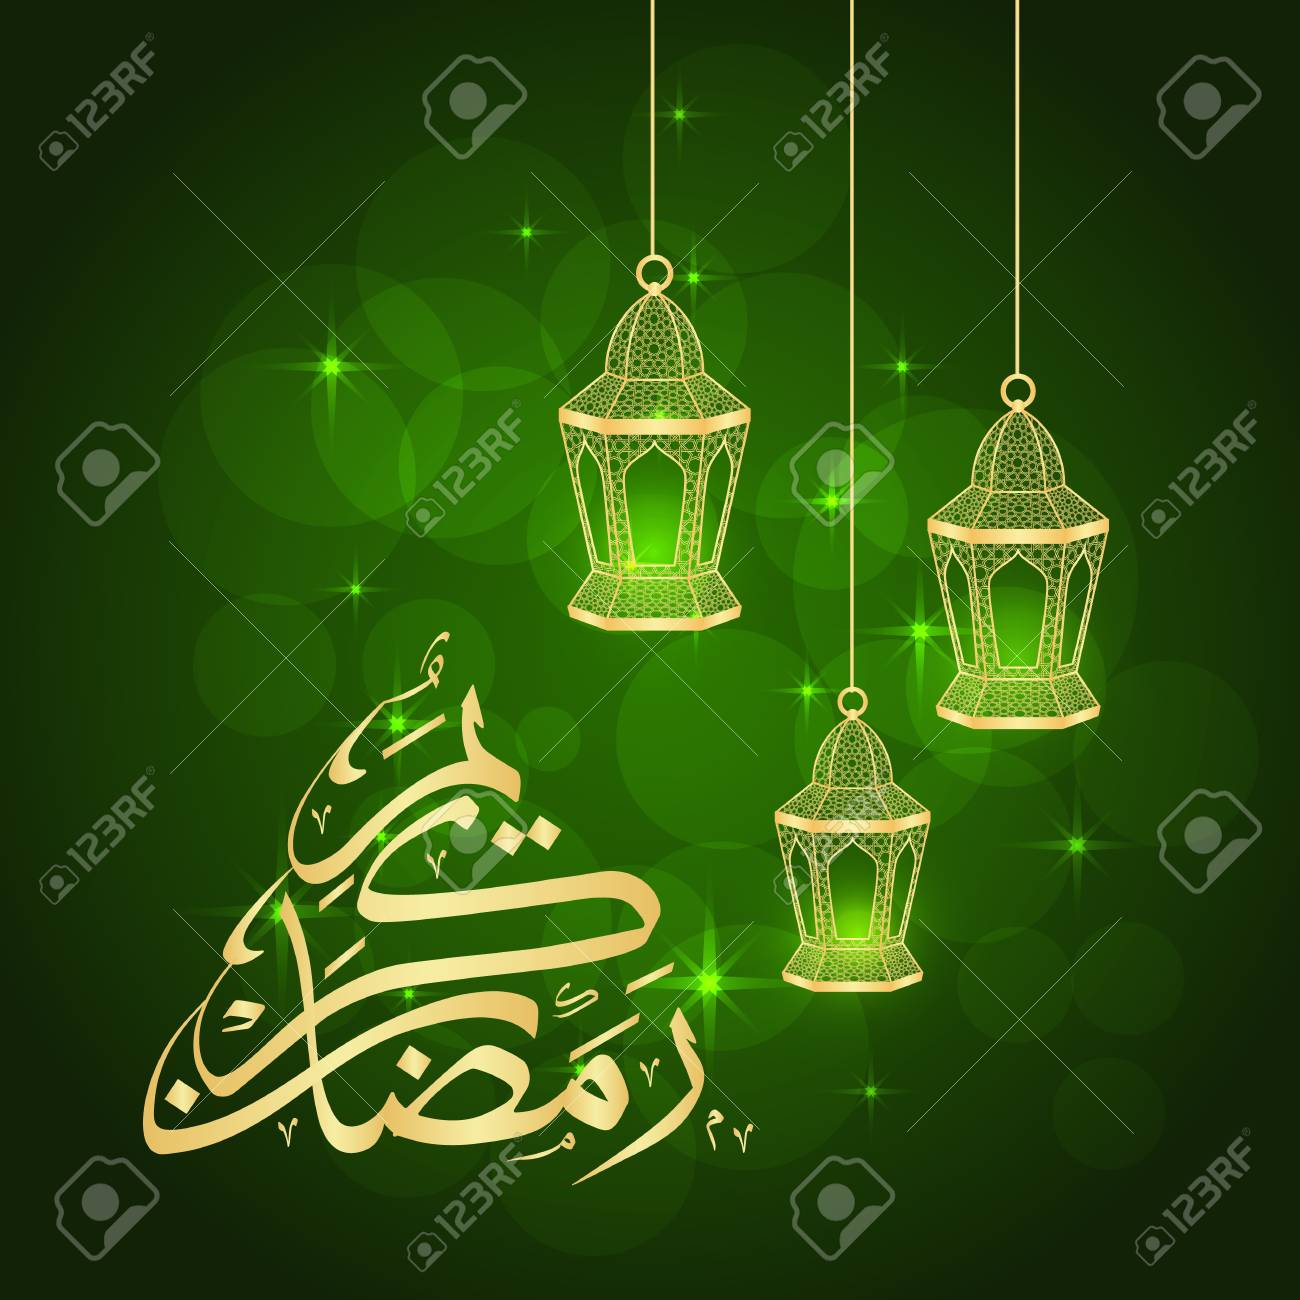 Ramadan greeting card with lanterns on green background  Vector